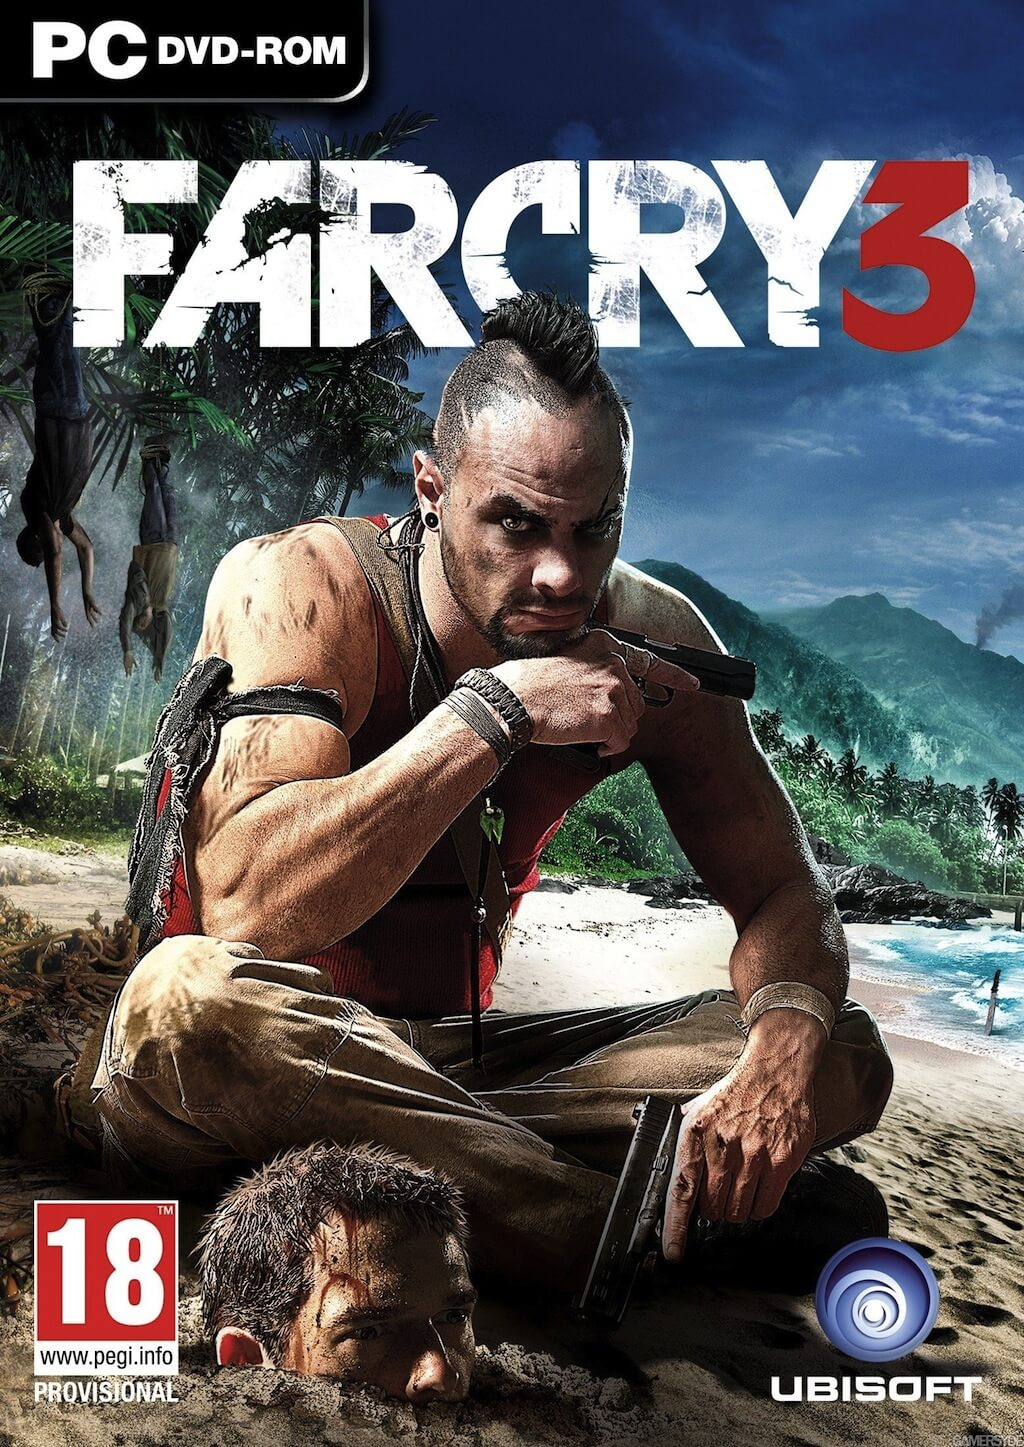 New 'Far Cry 3' Trailer & Behind-The-Scenes Video For E3